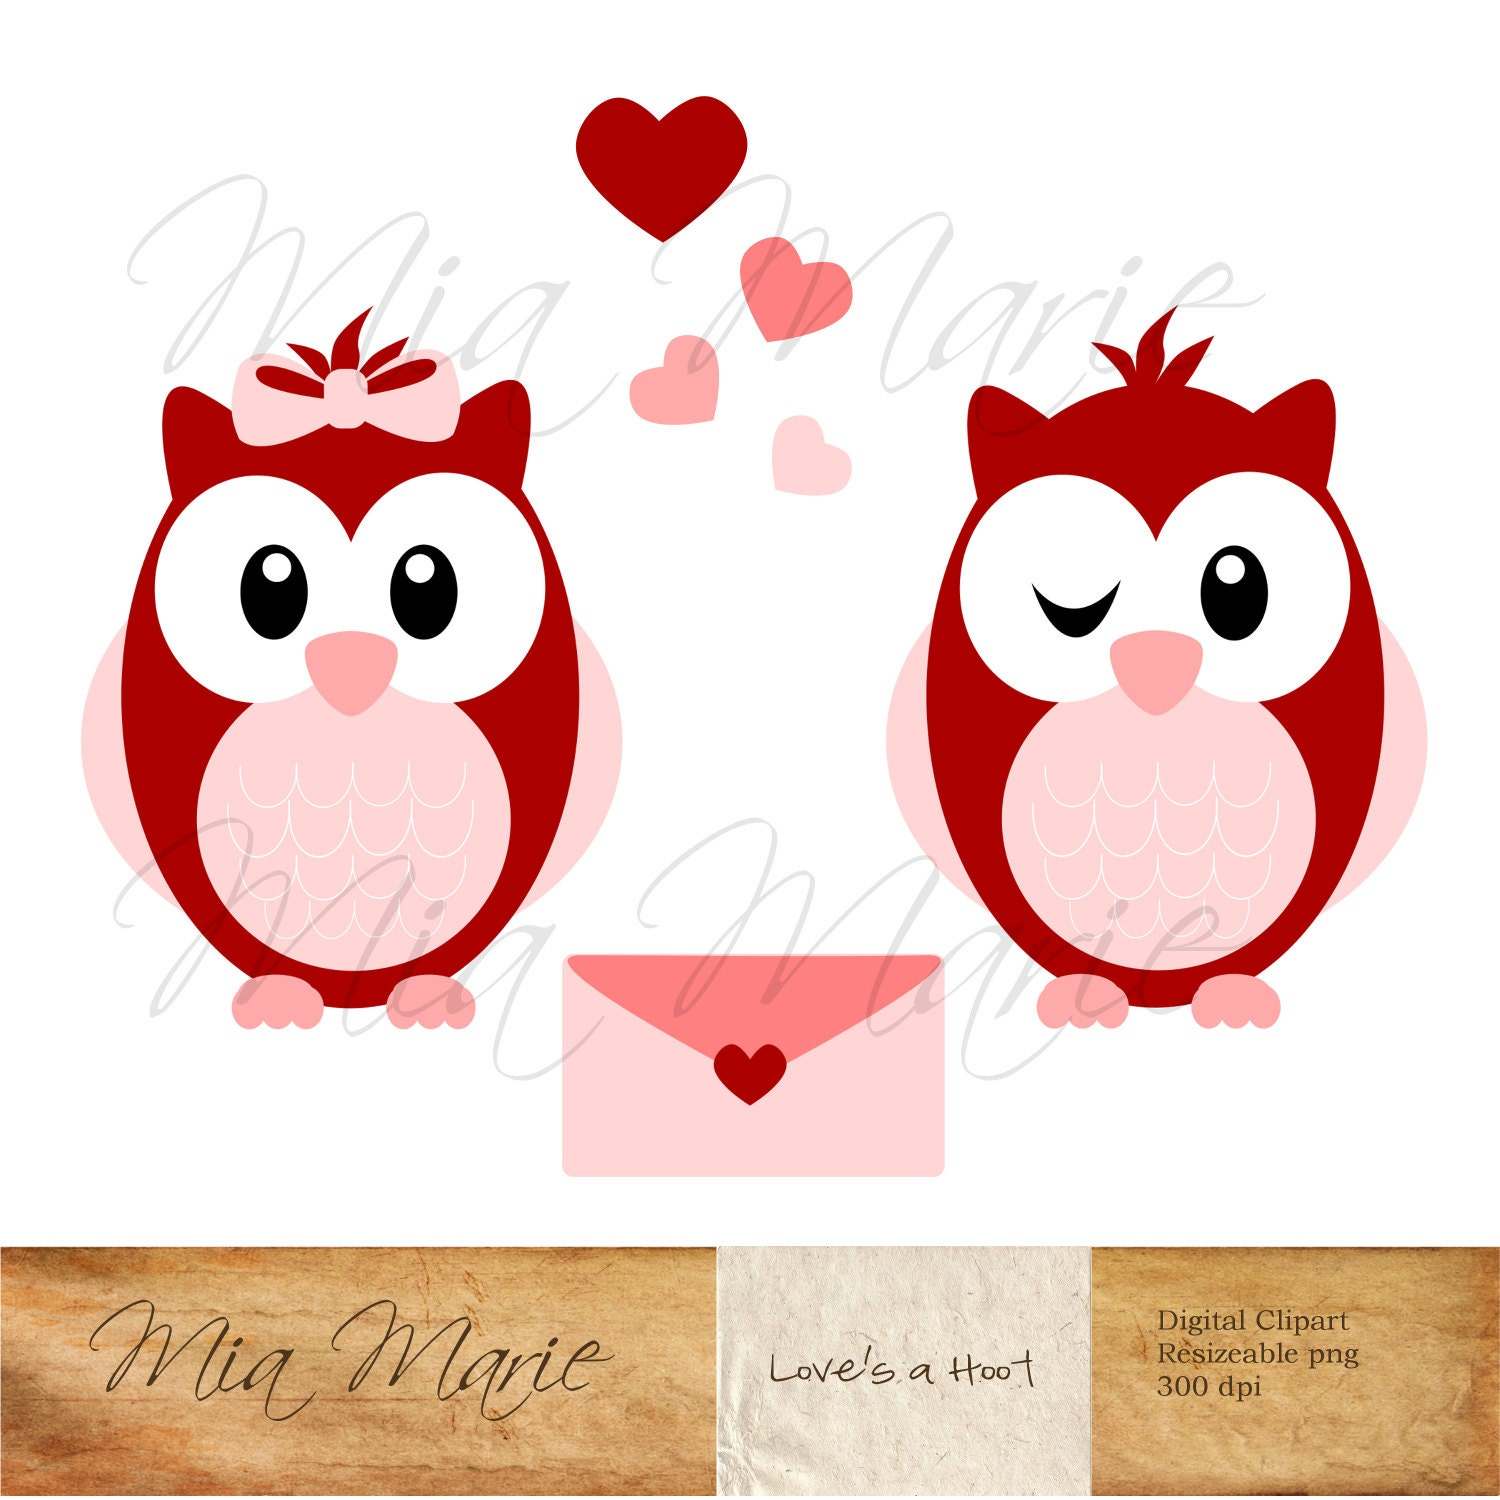 clipart valentines day cards - photo #28